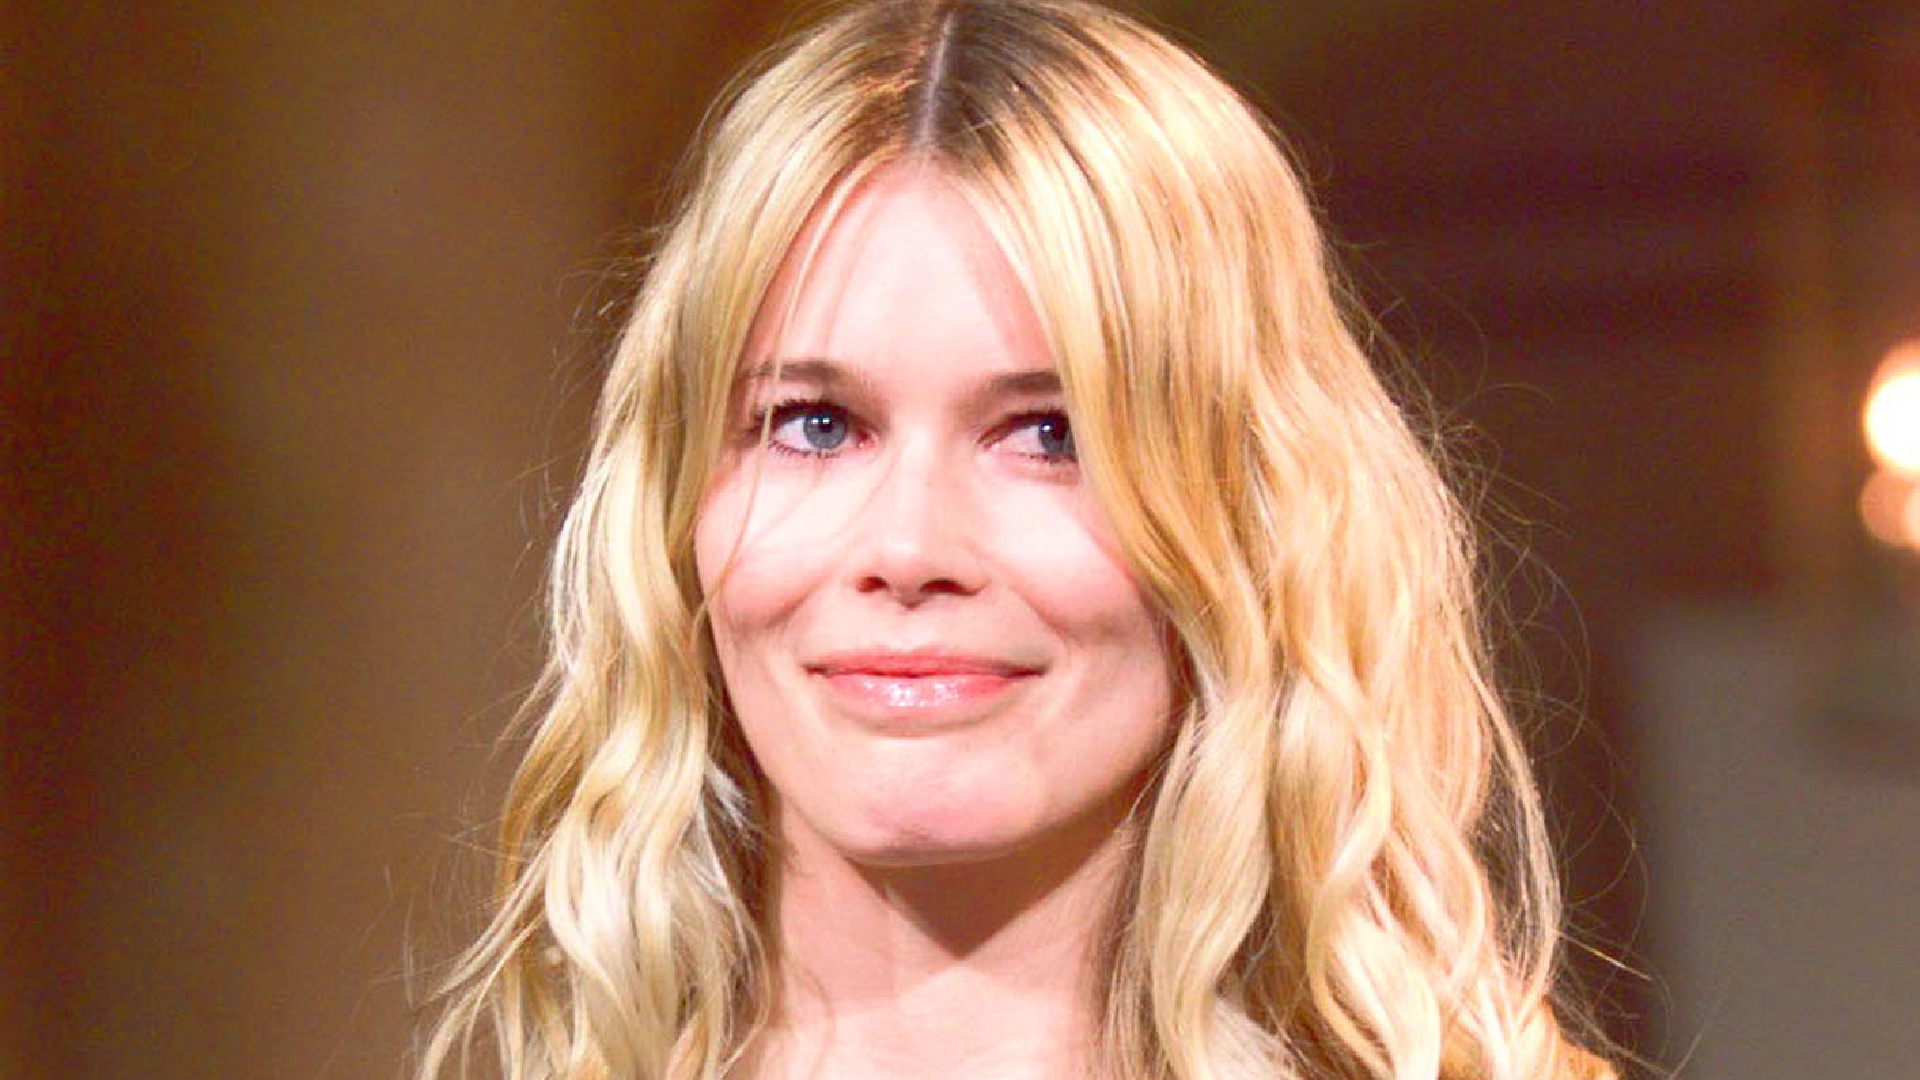 Claudia Schiffer at 51: Whatever happened to the supermodel of the 90s?